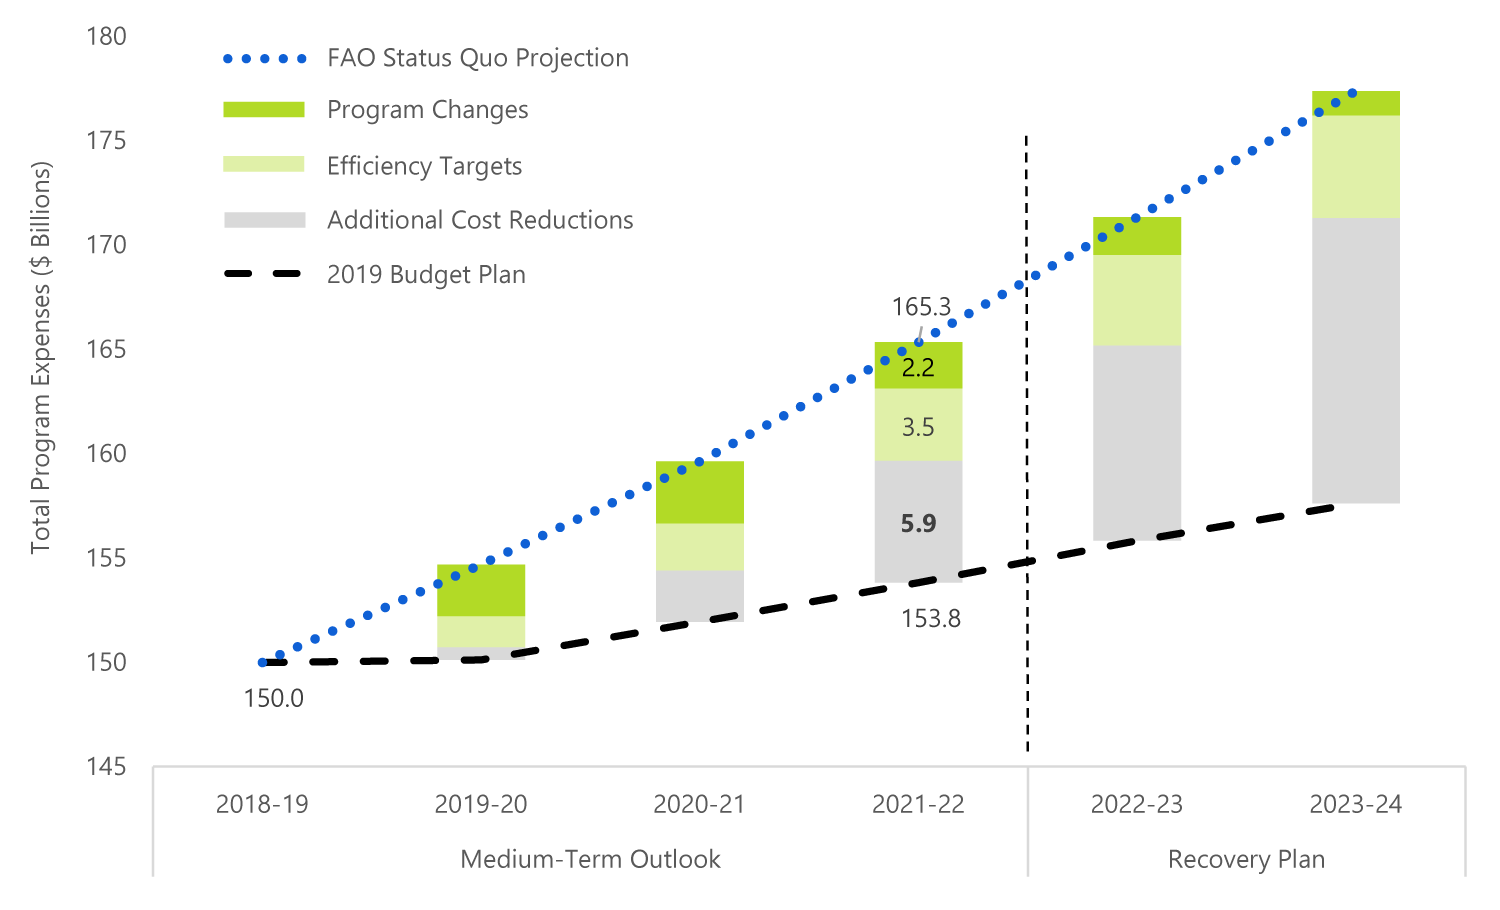 By 2021-22, program changes and efficiency targets in the 2019 budget will account for about half of the total cost reductions required to achieve the government's projected cost savings